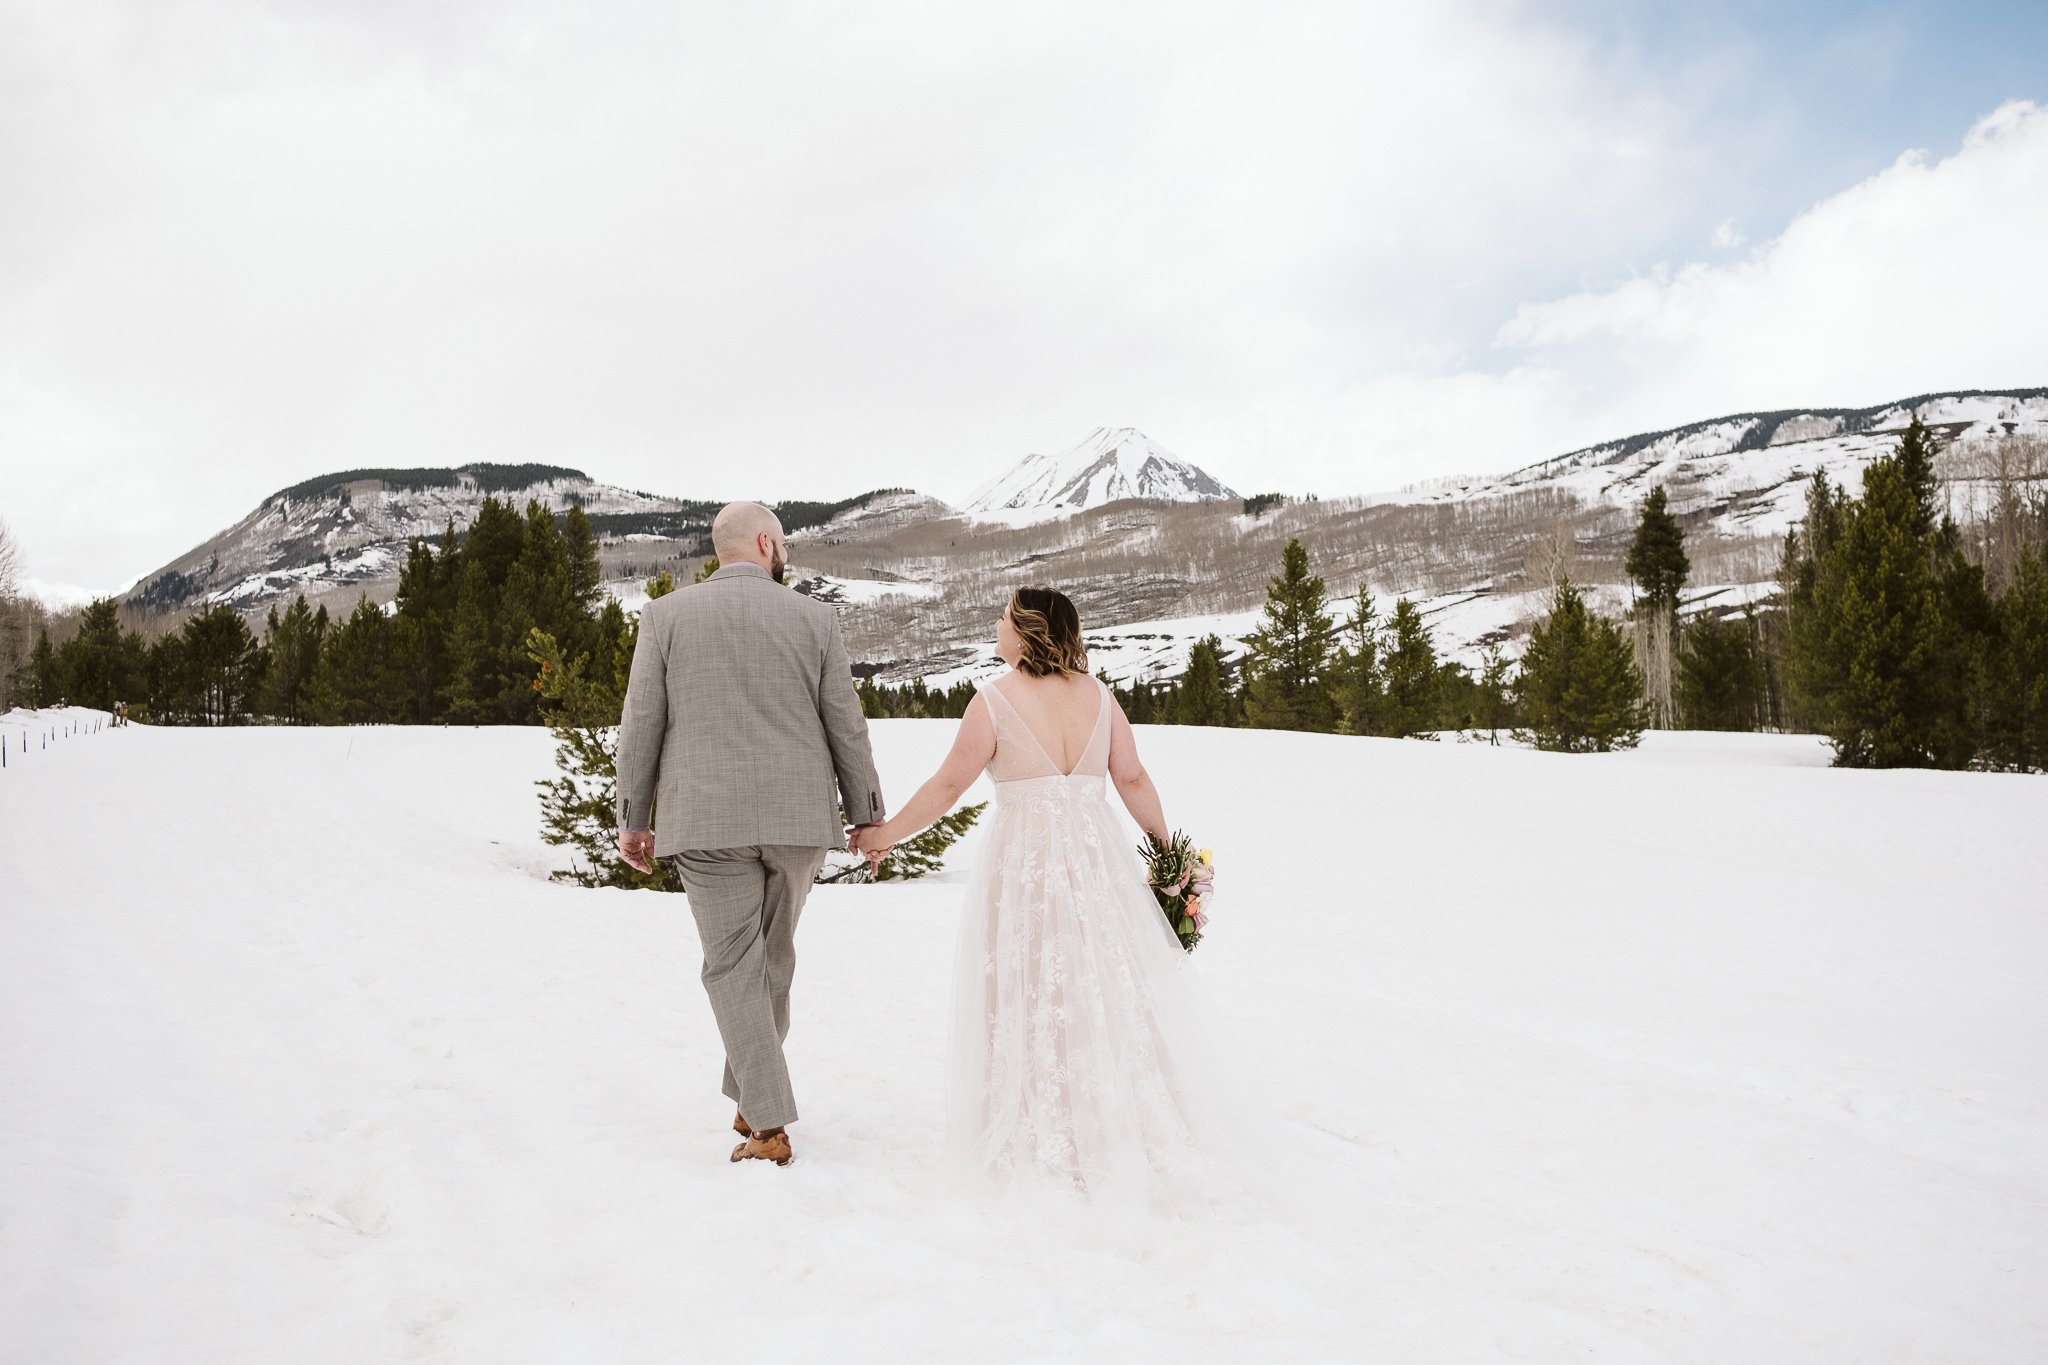 Bride and groom walking in snowy landscape in Crested Butte